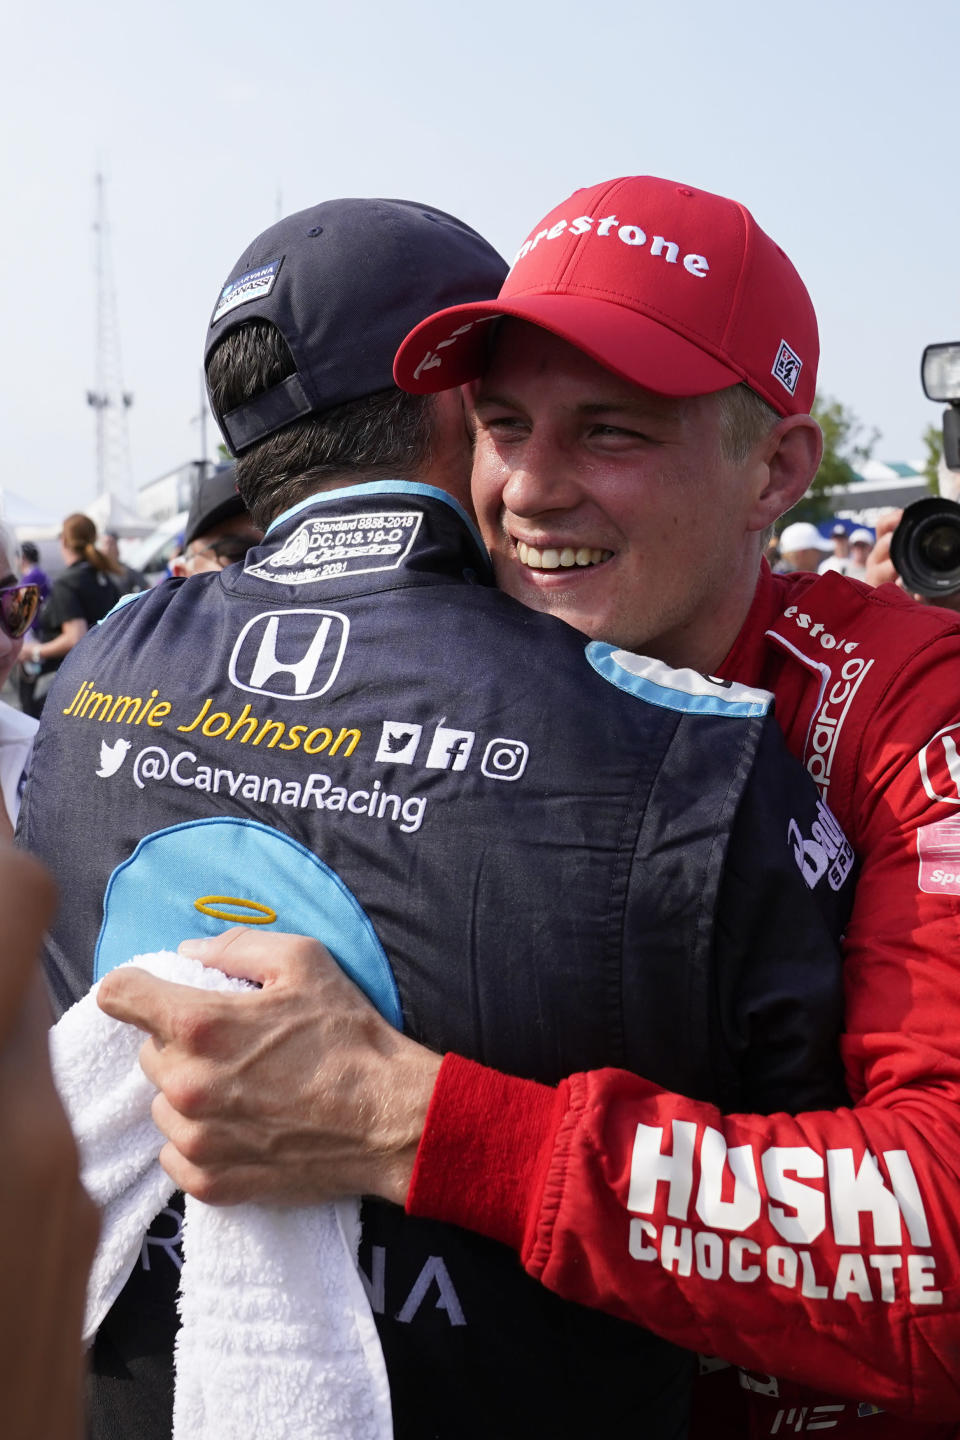 Marcus Ericsson, of Sweden, celebrates with Jimmie Johnson after winning the first race of the IndyCar Detroit Grand Prix auto racing doubleheader on Belle Isle in Detroit, Saturday, June 12, 2021. (AP Photo/Paul Sancya)